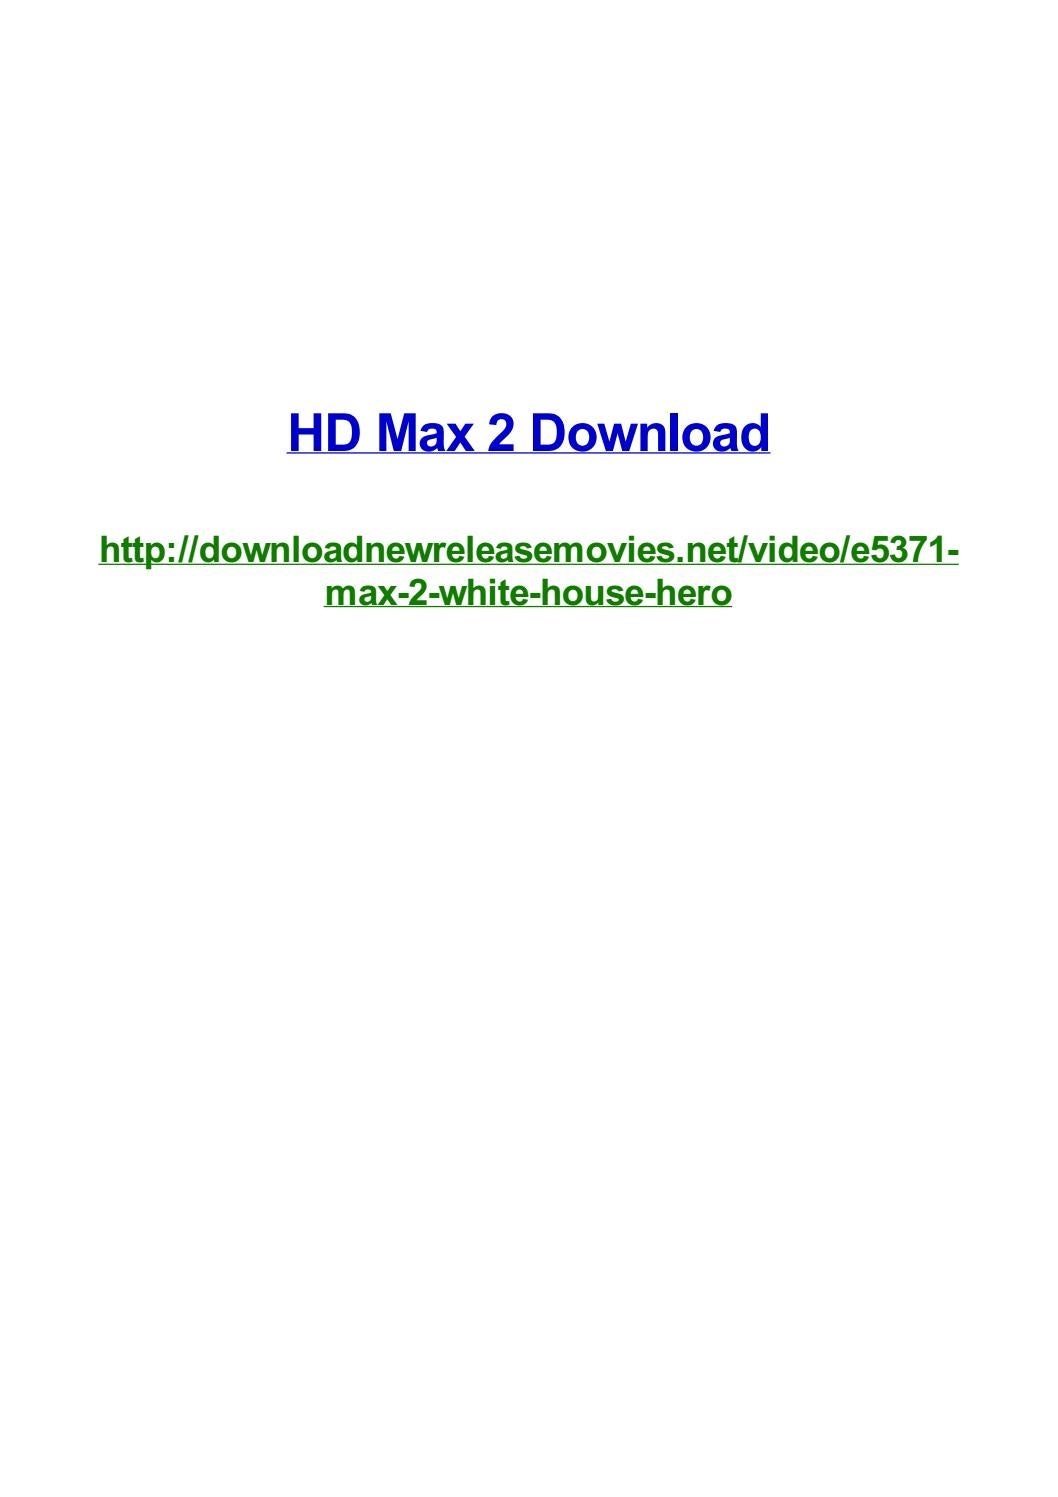 Hd max 2 download by Frank Seamons - issuu